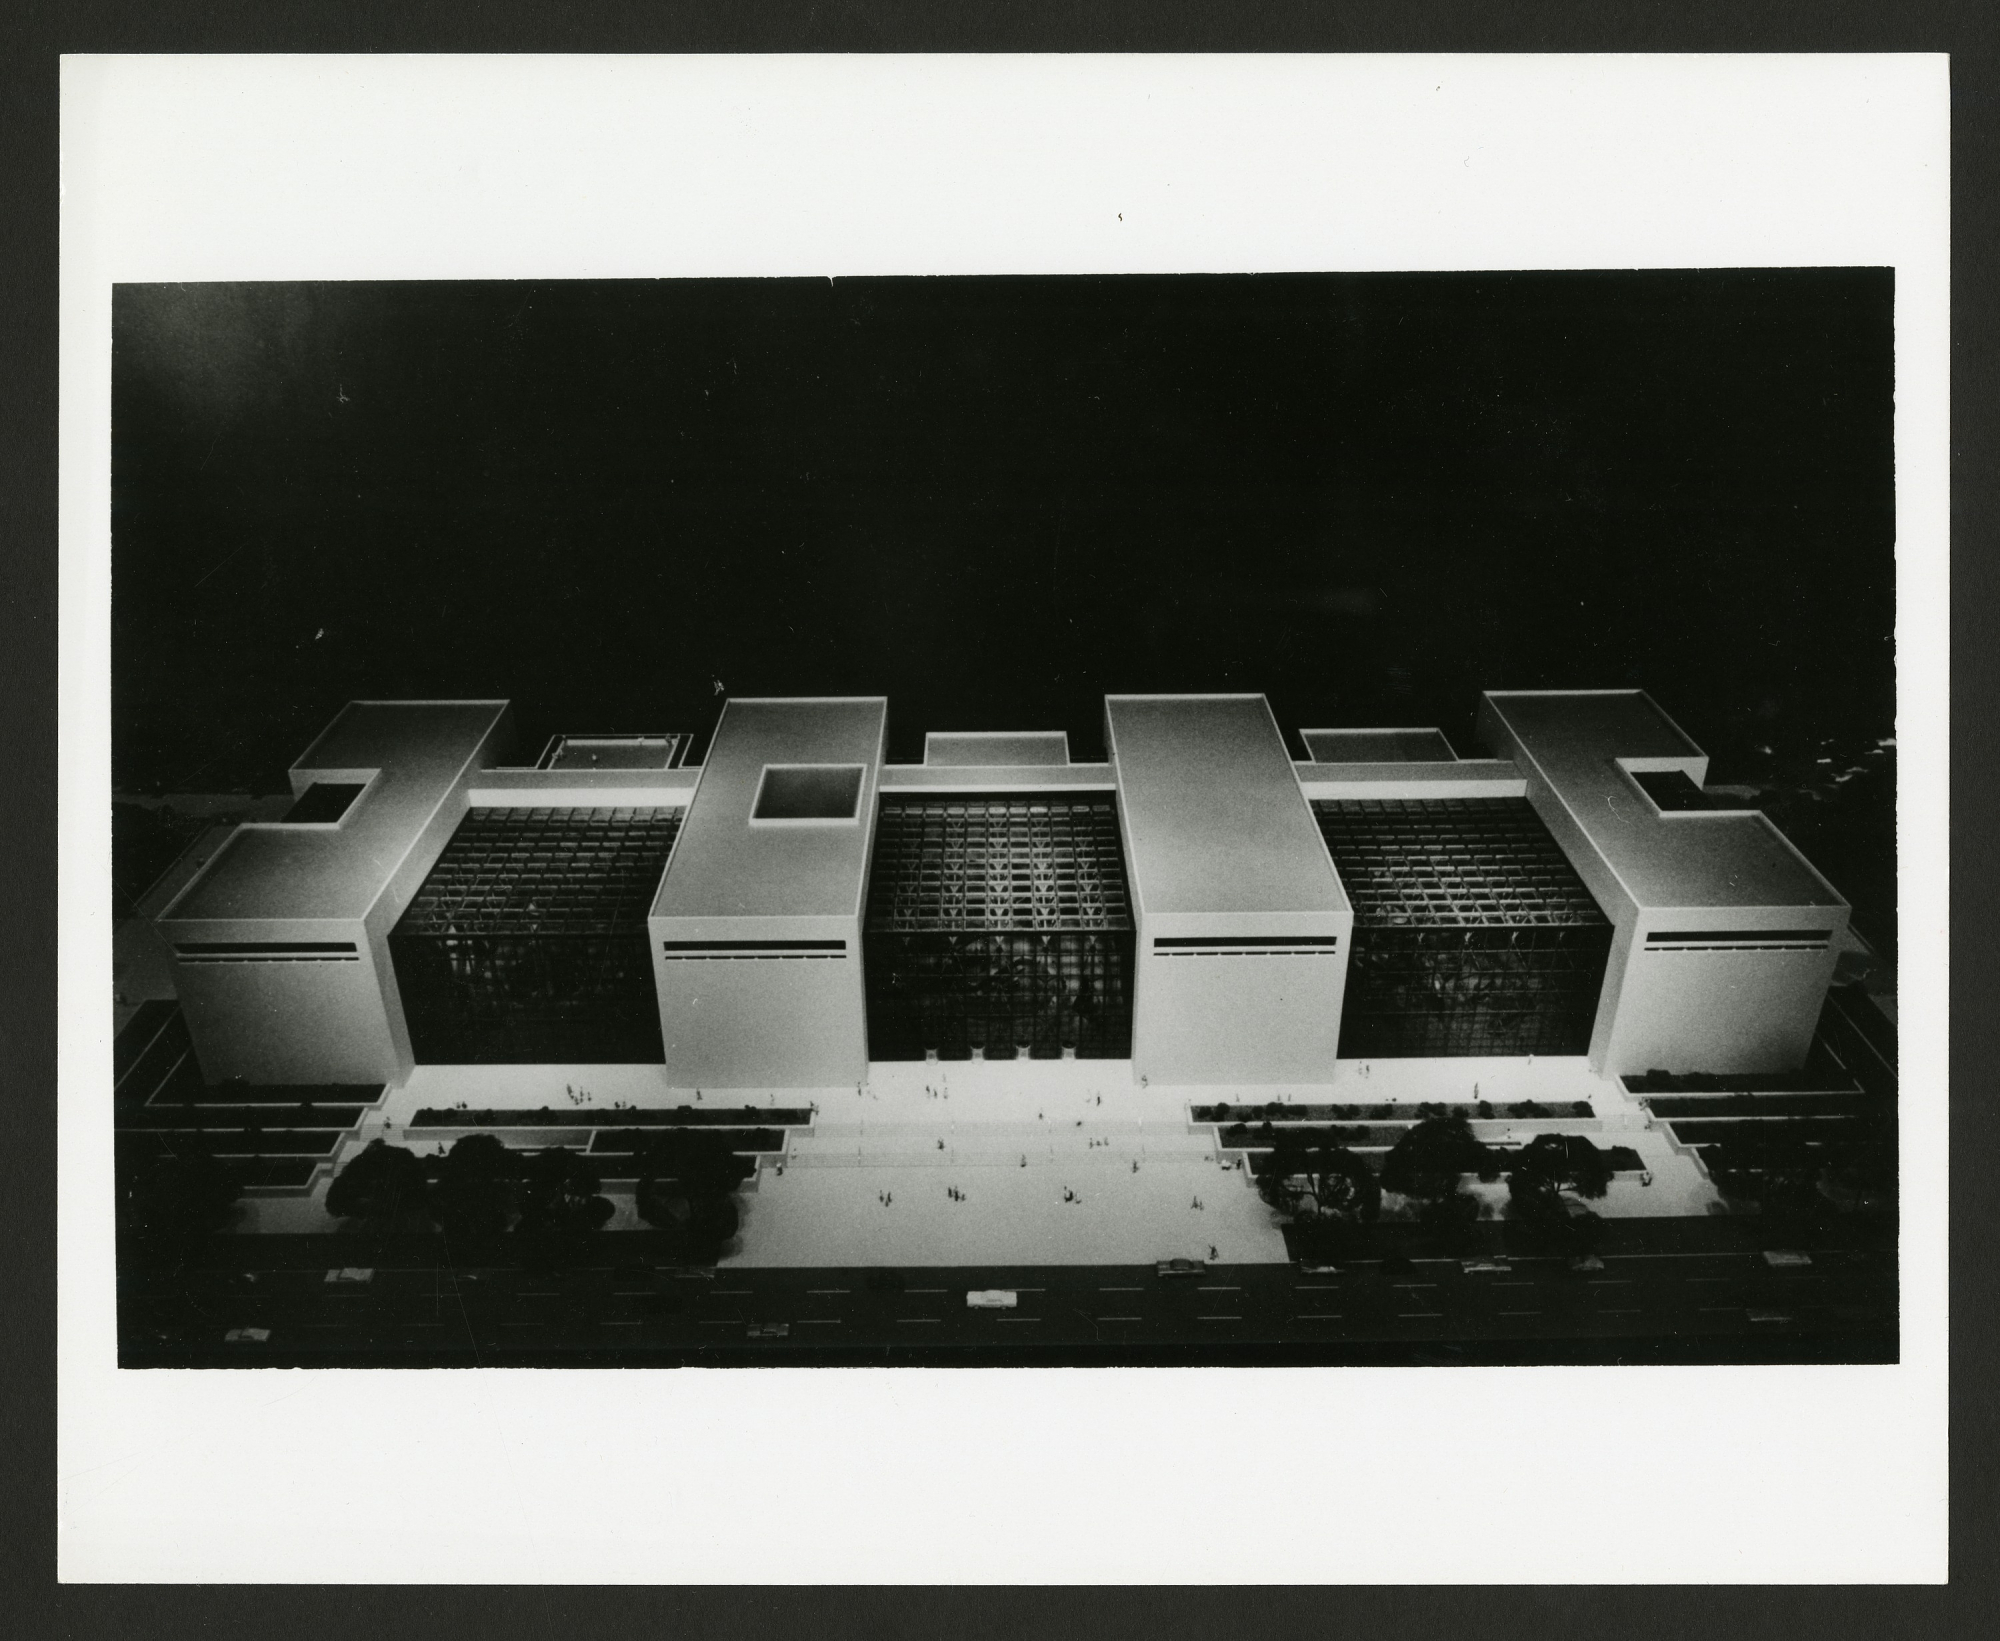 B&W image of a model of a non-selected proposed design for the National Air and Space Museum Bui